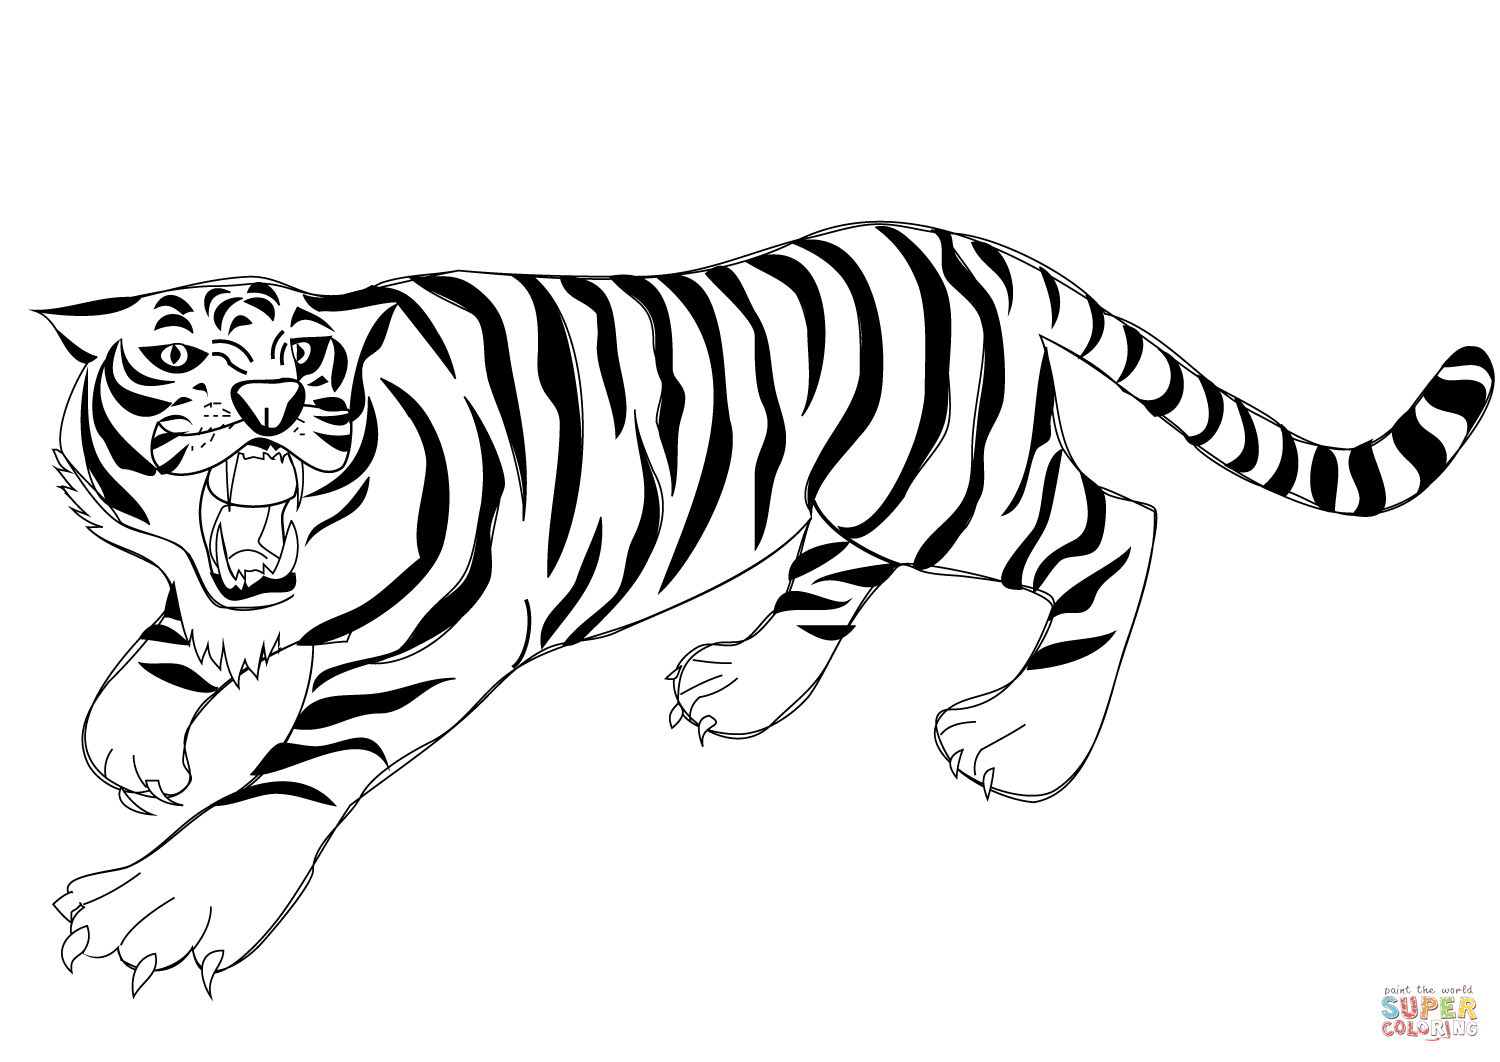 tiger images for colouring free printable tiger coloring pages for kids for colouring tiger images